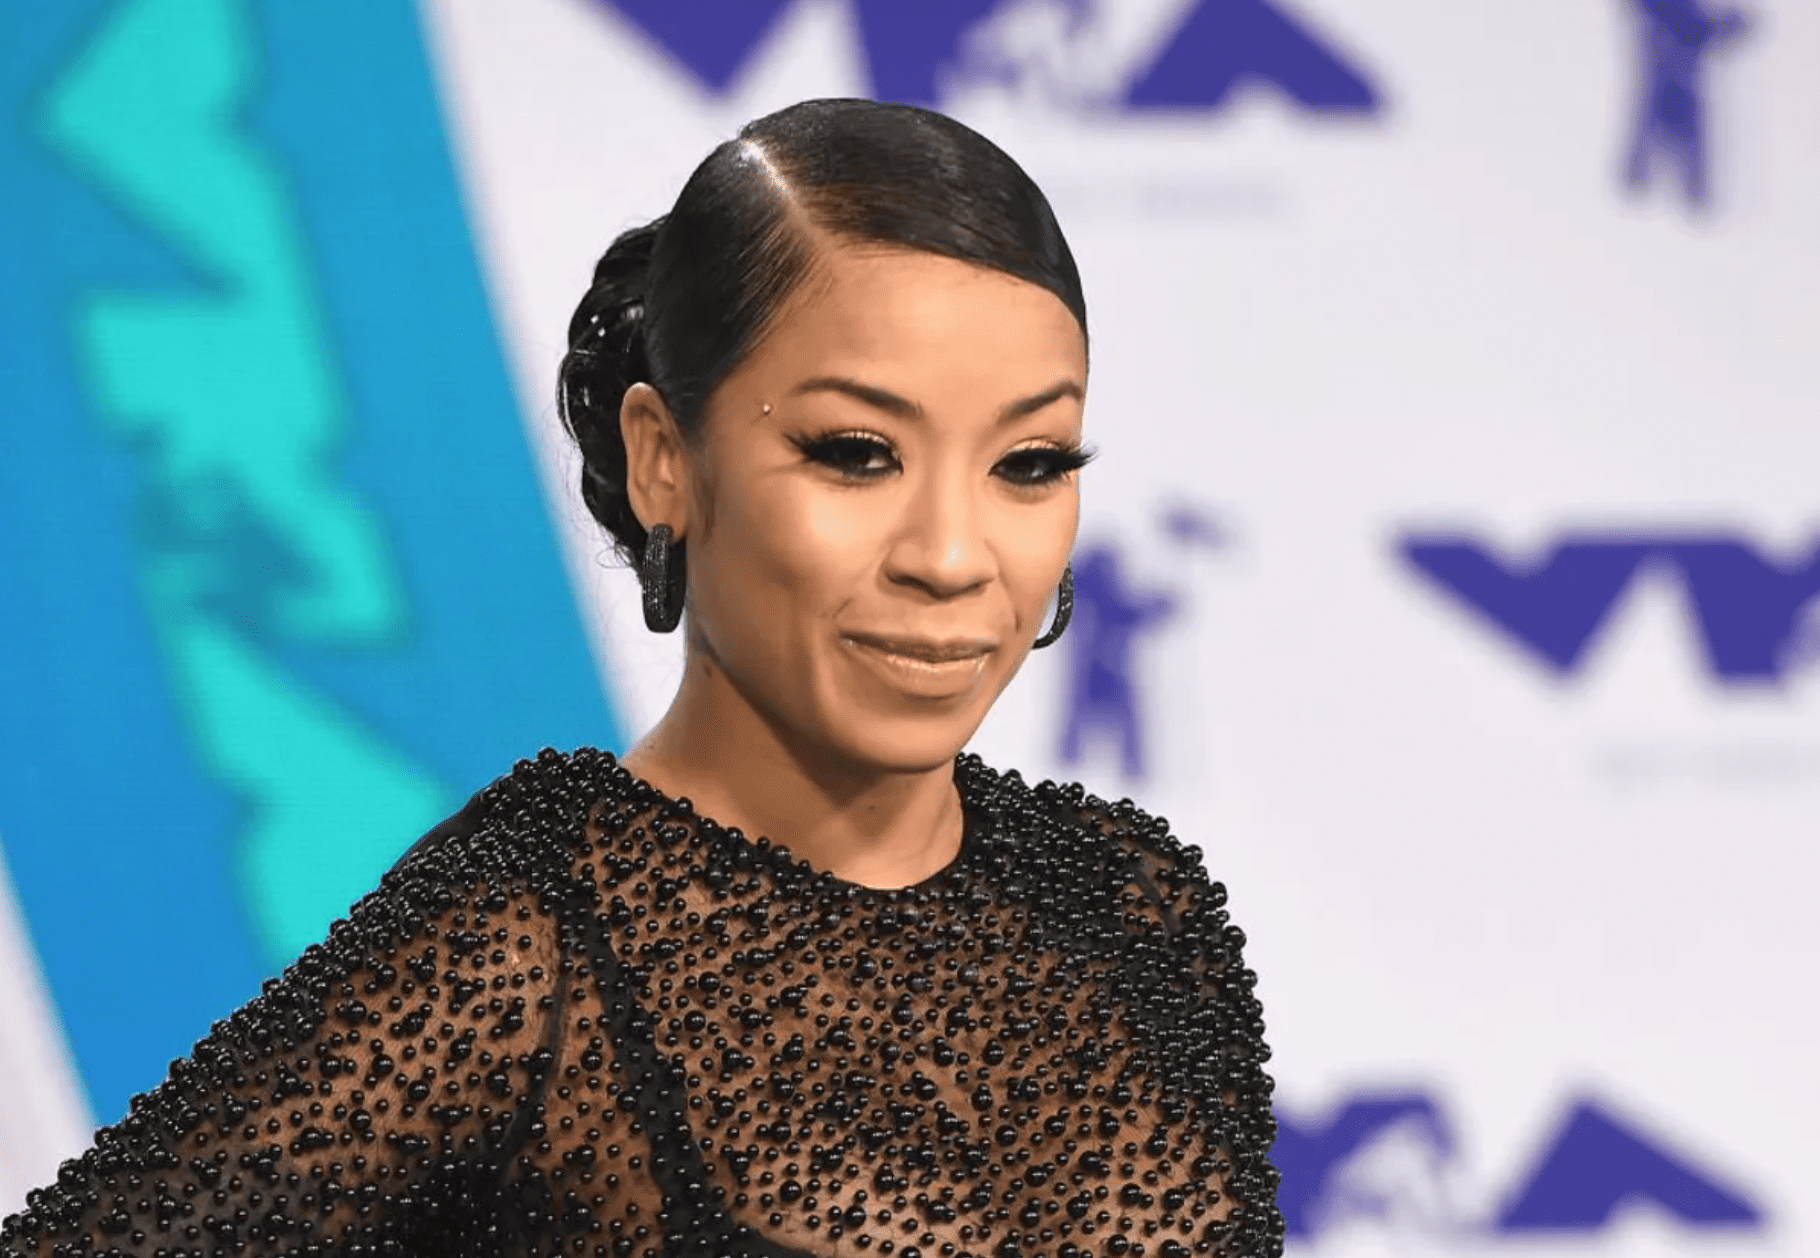 Keyshia Cole at the 2017 MTV Video Music Awards at The Forum on August 27, 2017.   Source: Getty Images